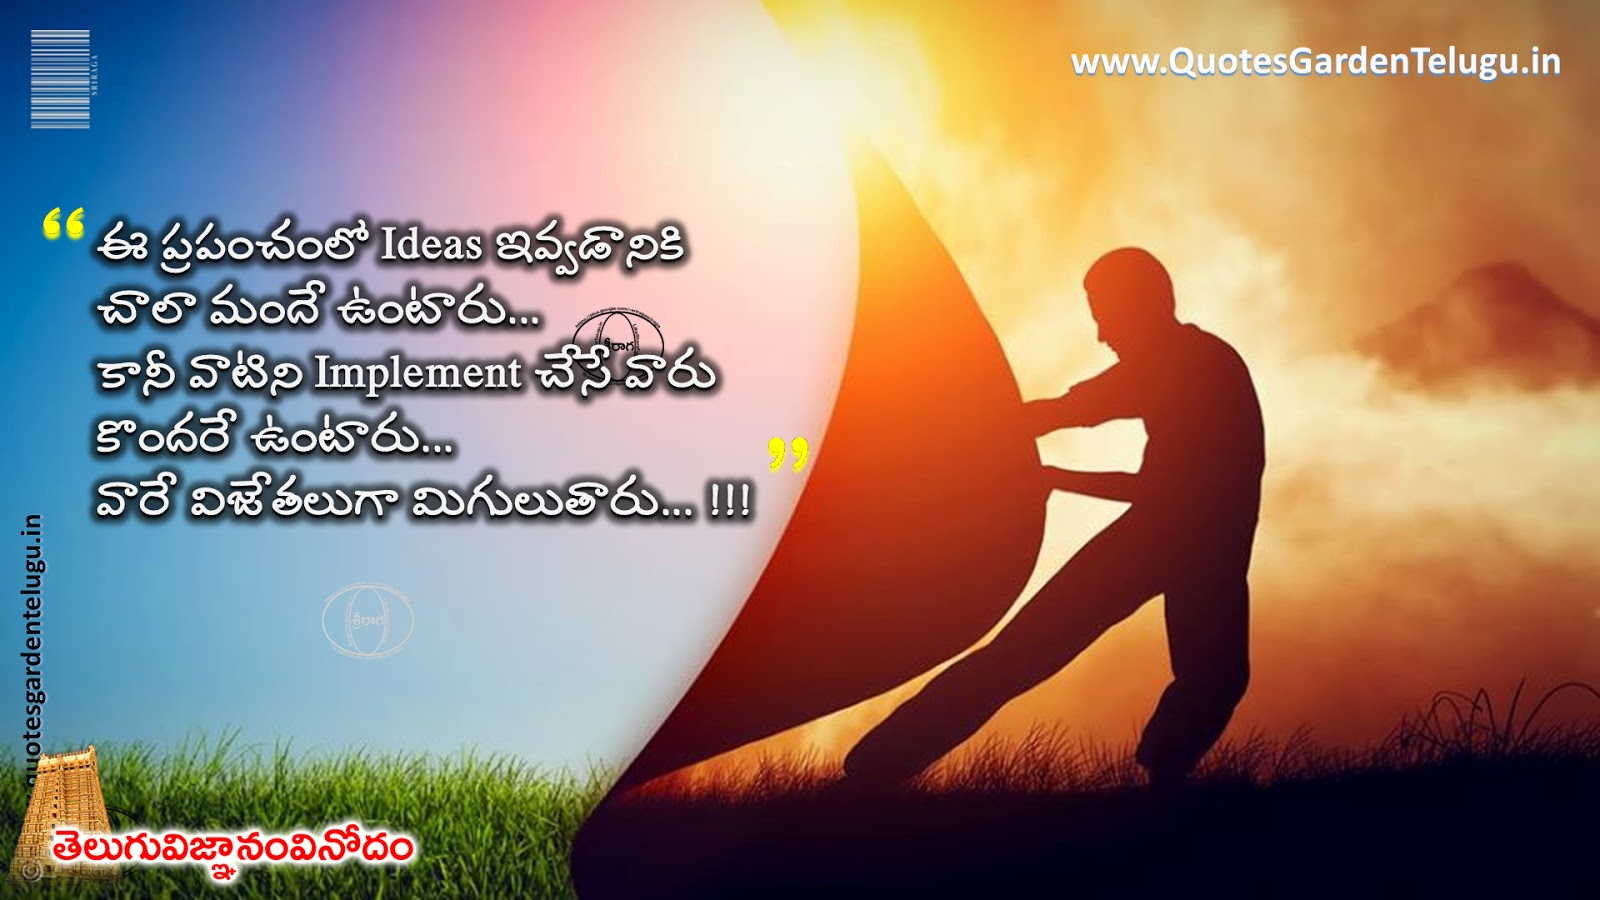 Daily inspirational Quotes in telugu for students quotes garden telugu